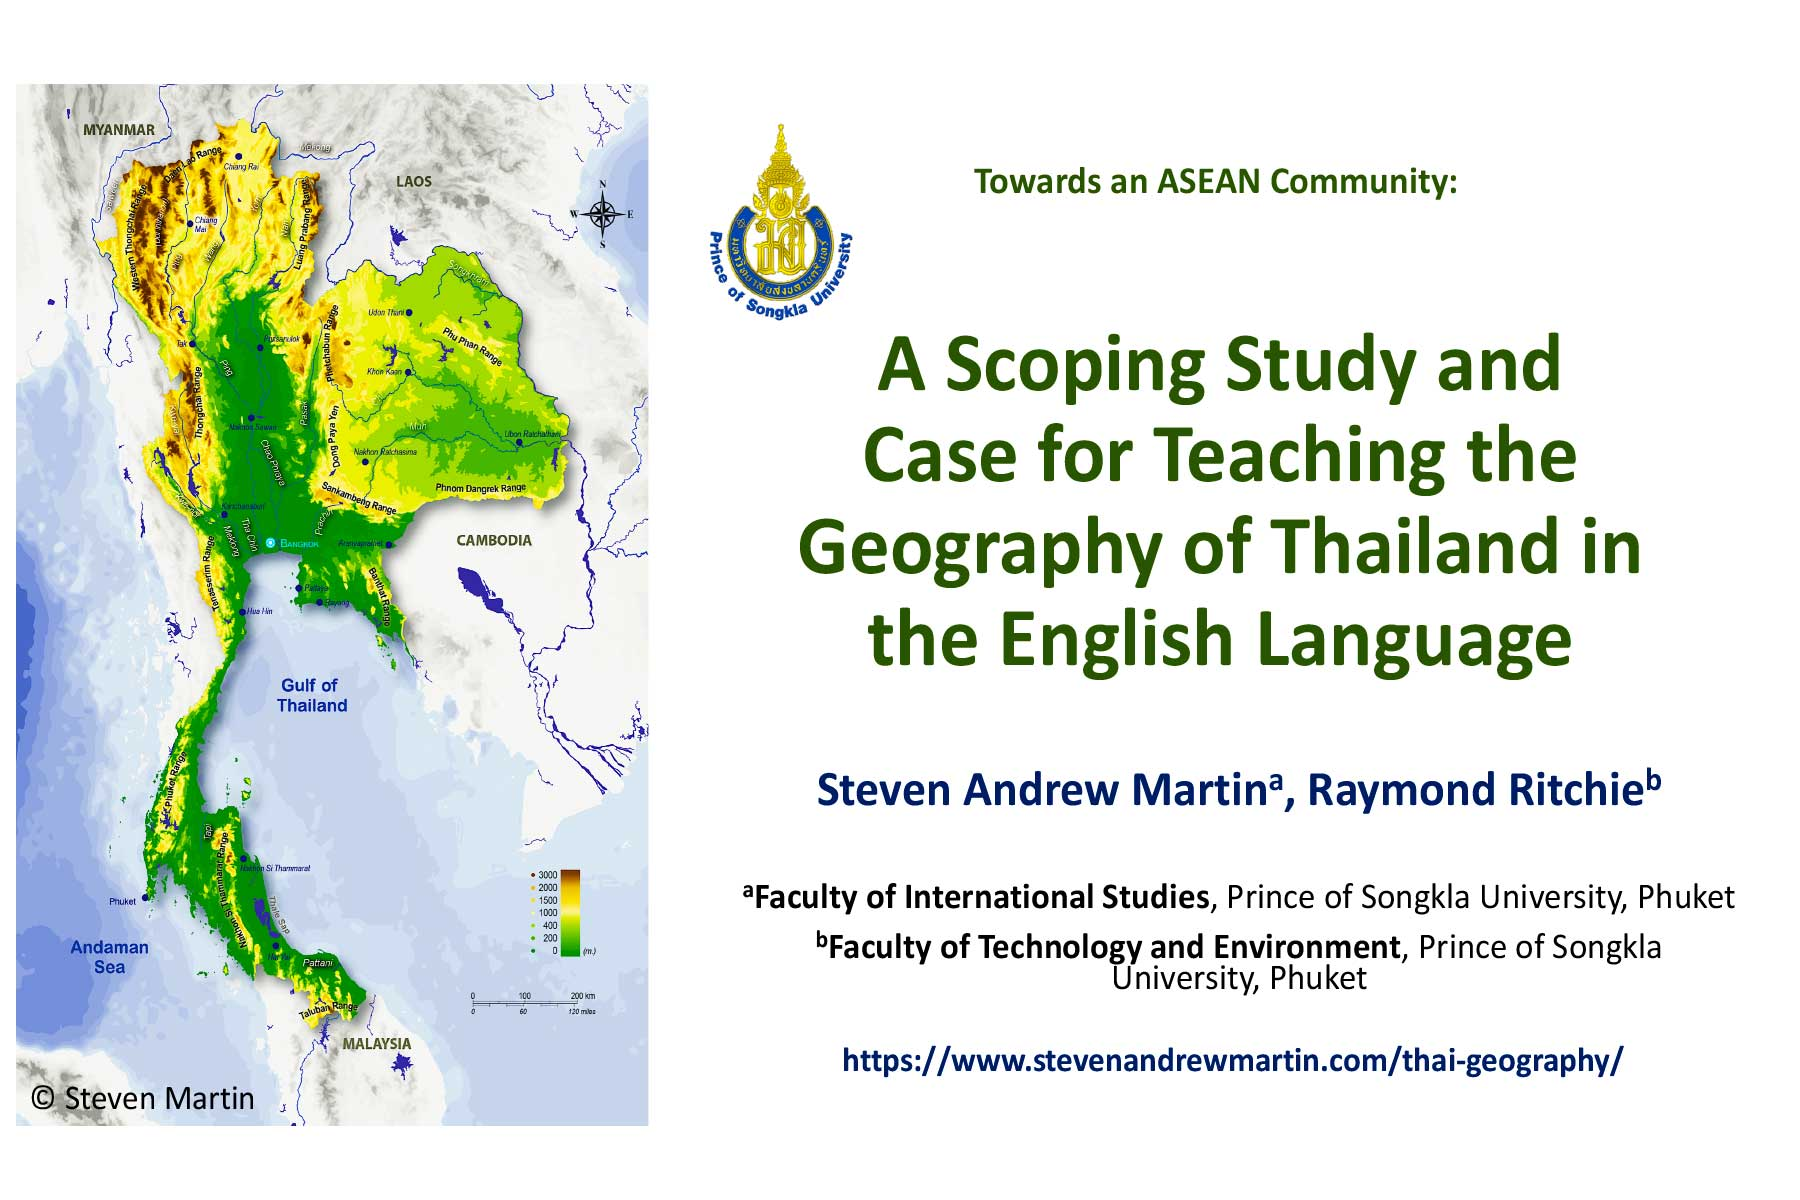 Martin, S. A., & Ritchie, R. (2018).Towards an ASEAN community: A scoping study and case for teaching the geography of Thailand in the English language.